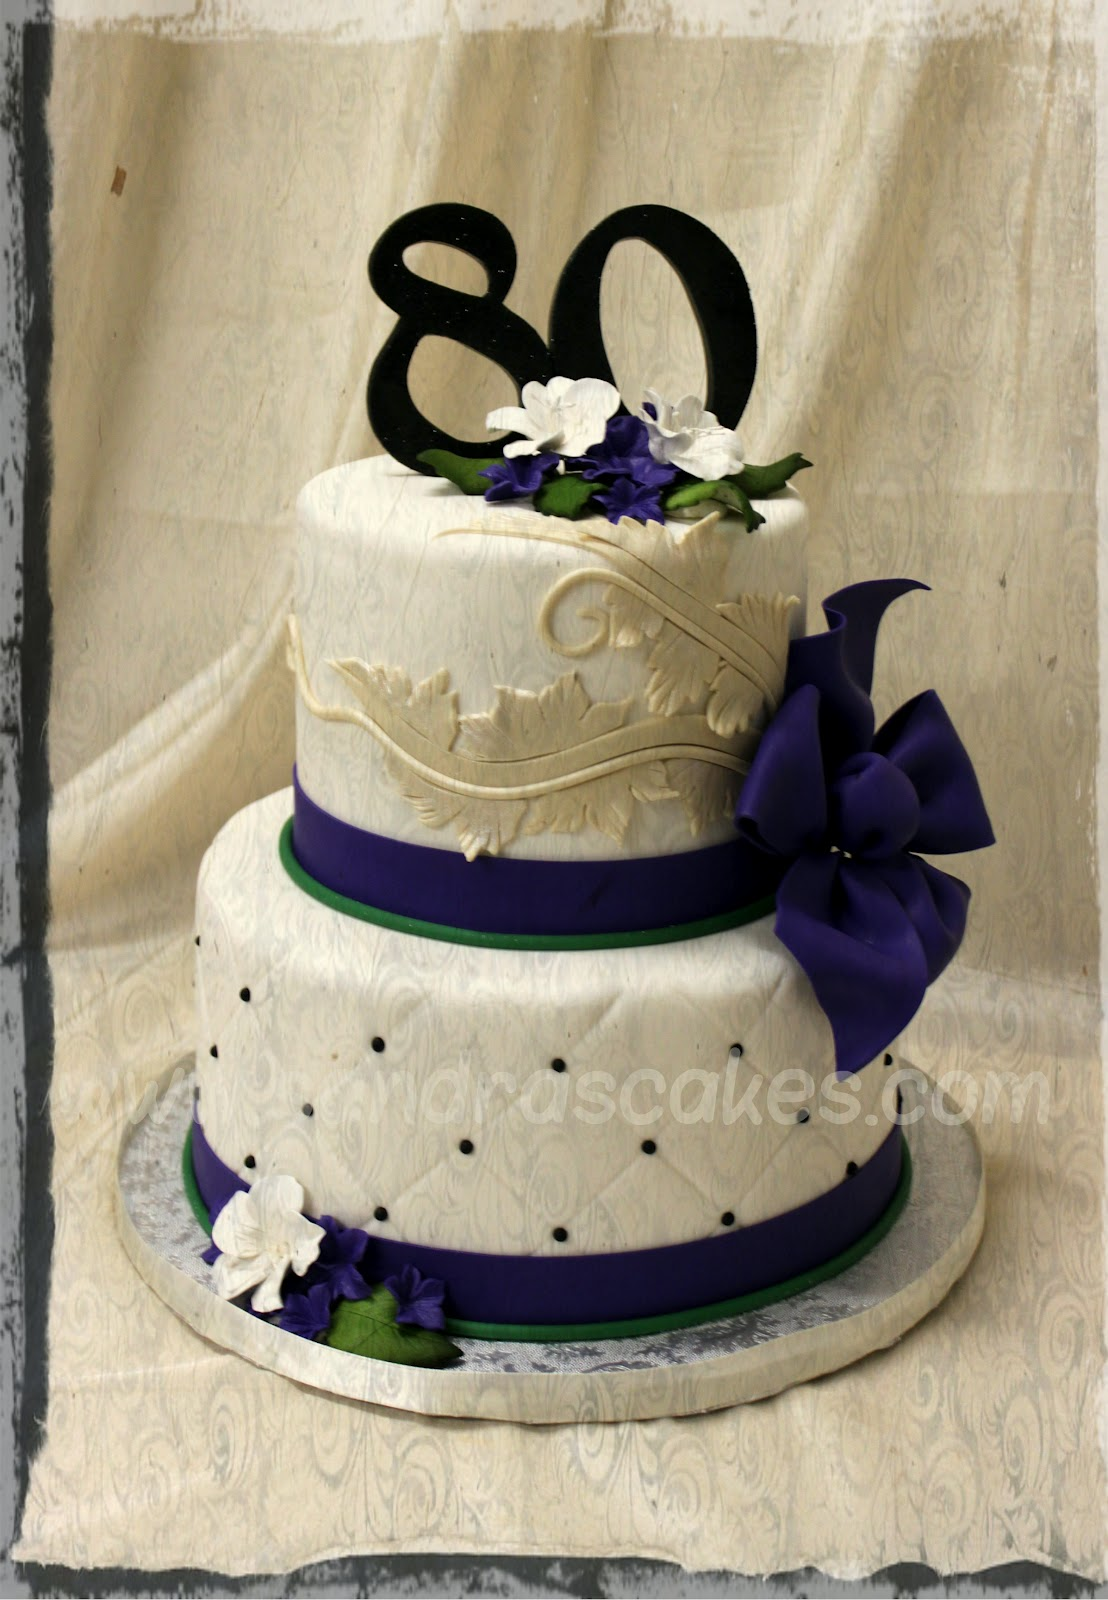 9 Exquisite Birthday Cakes Photo Exquisite Birthday Cake Elegant